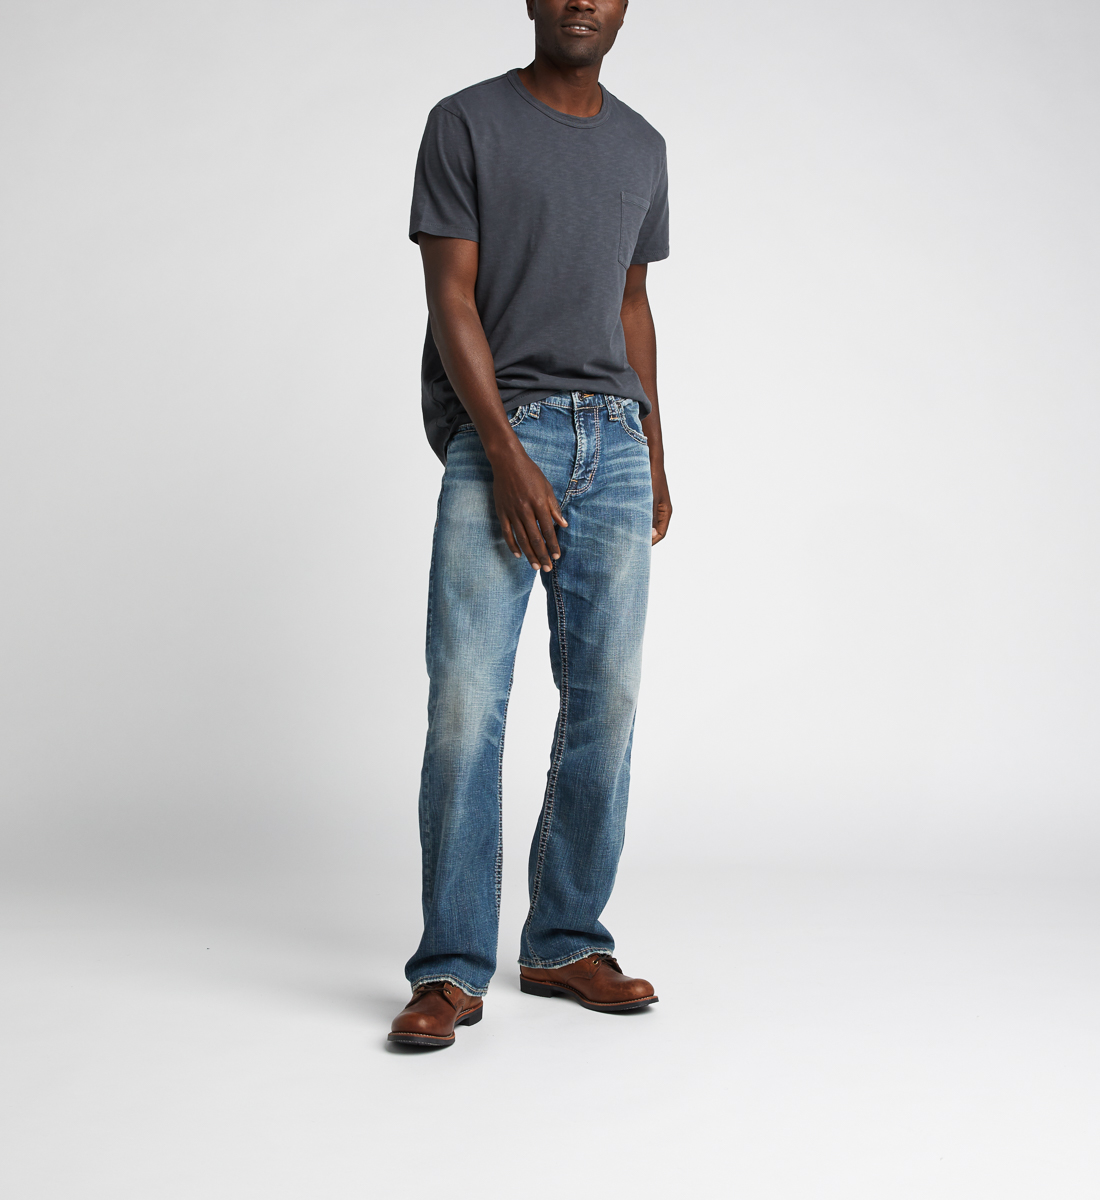 Silver Jeans Gordie Loose Fit Straight Jeans